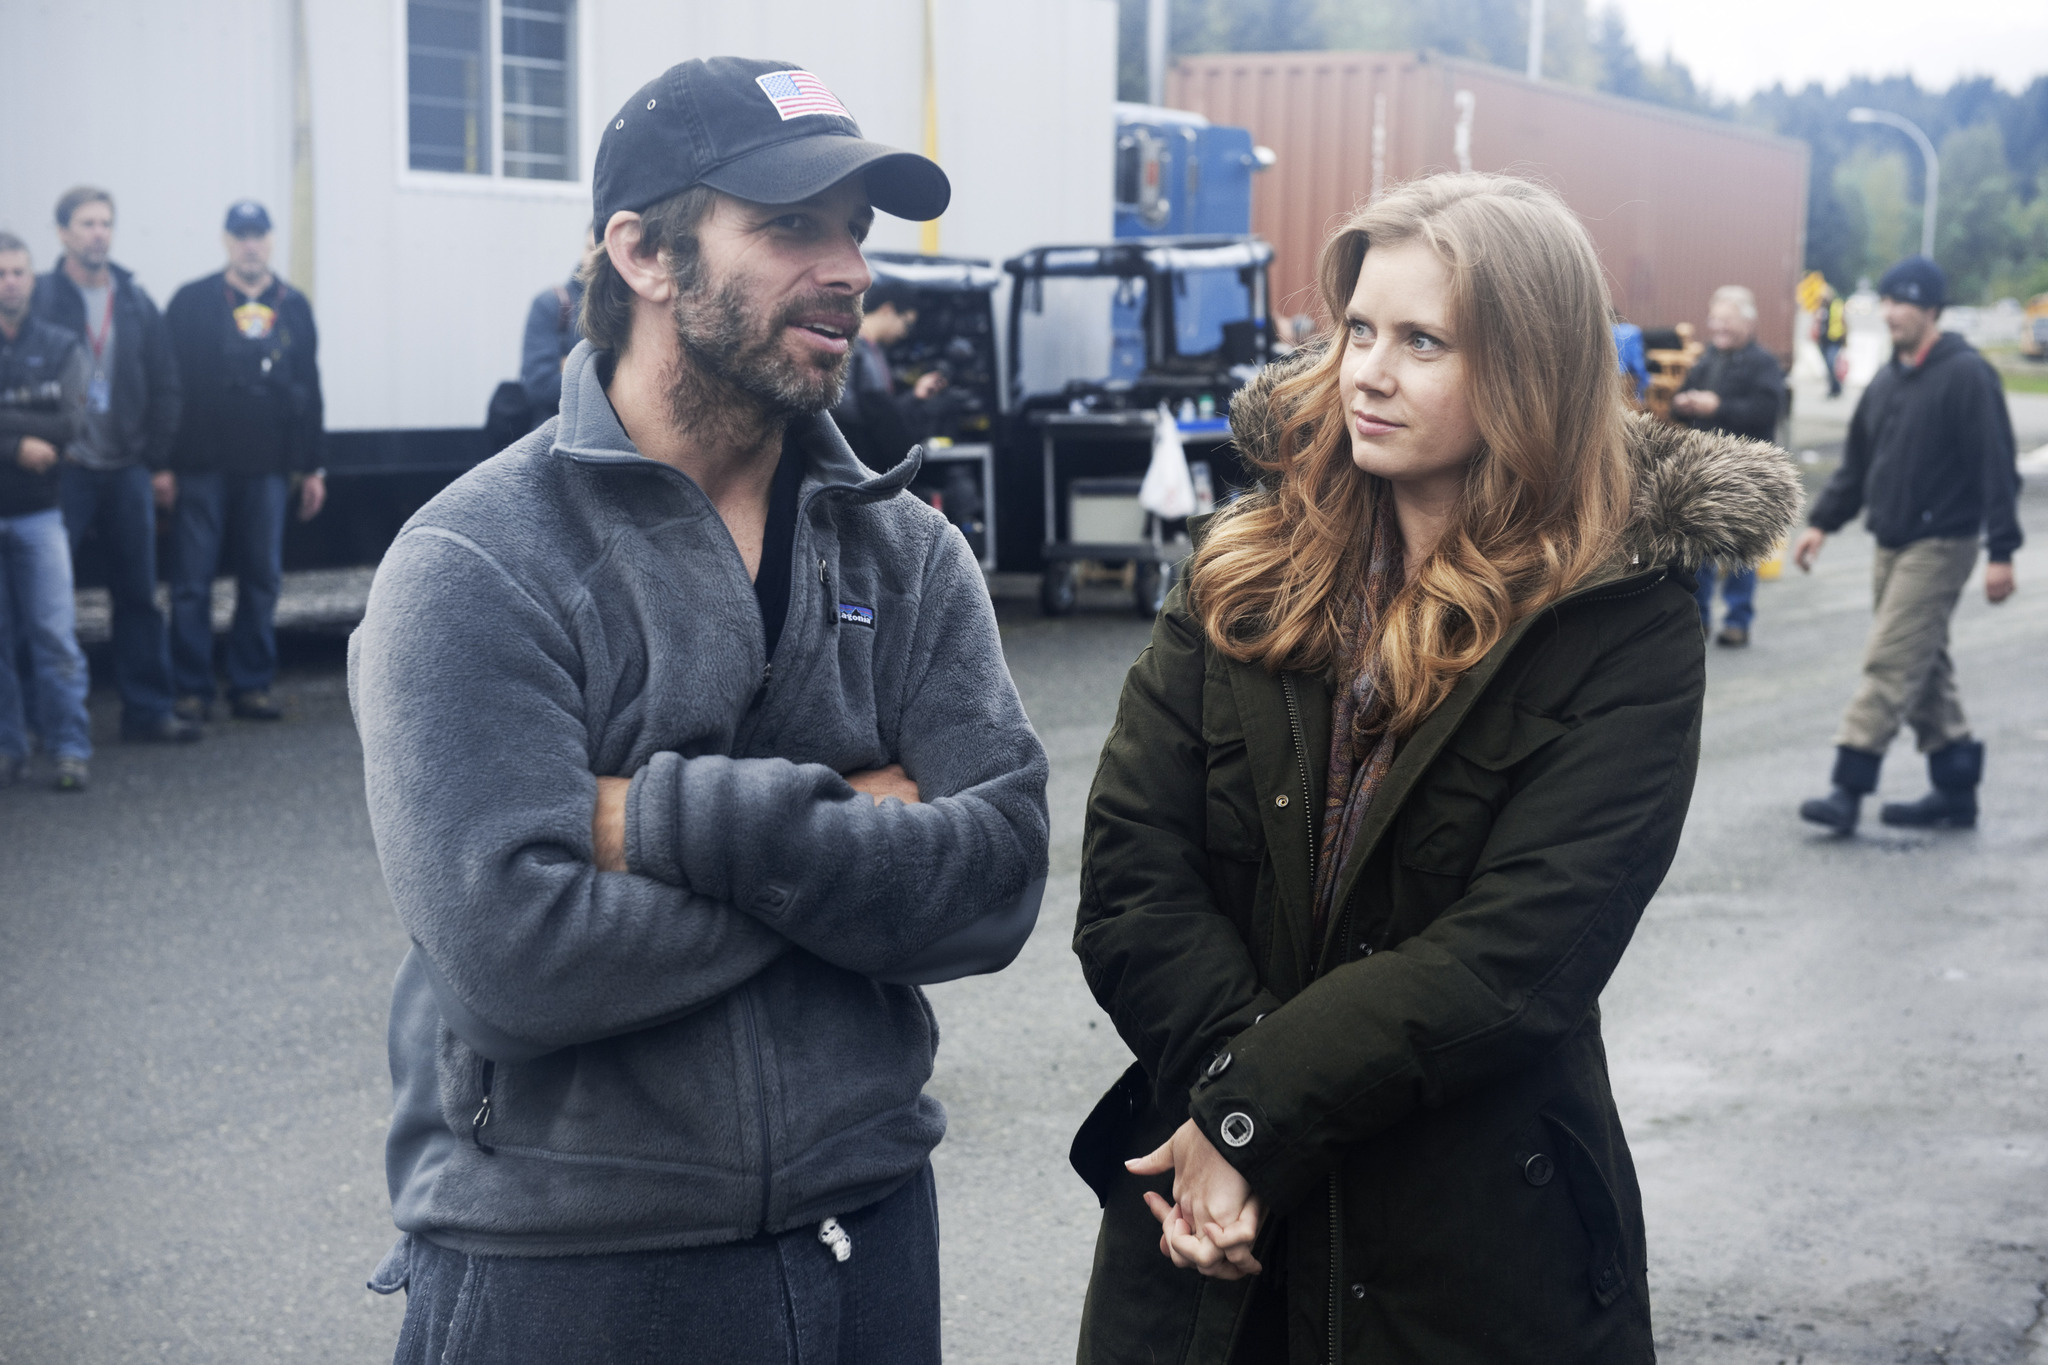 Zack Snyder and Amy Adams on set of Man of Steel - HeyUGuys